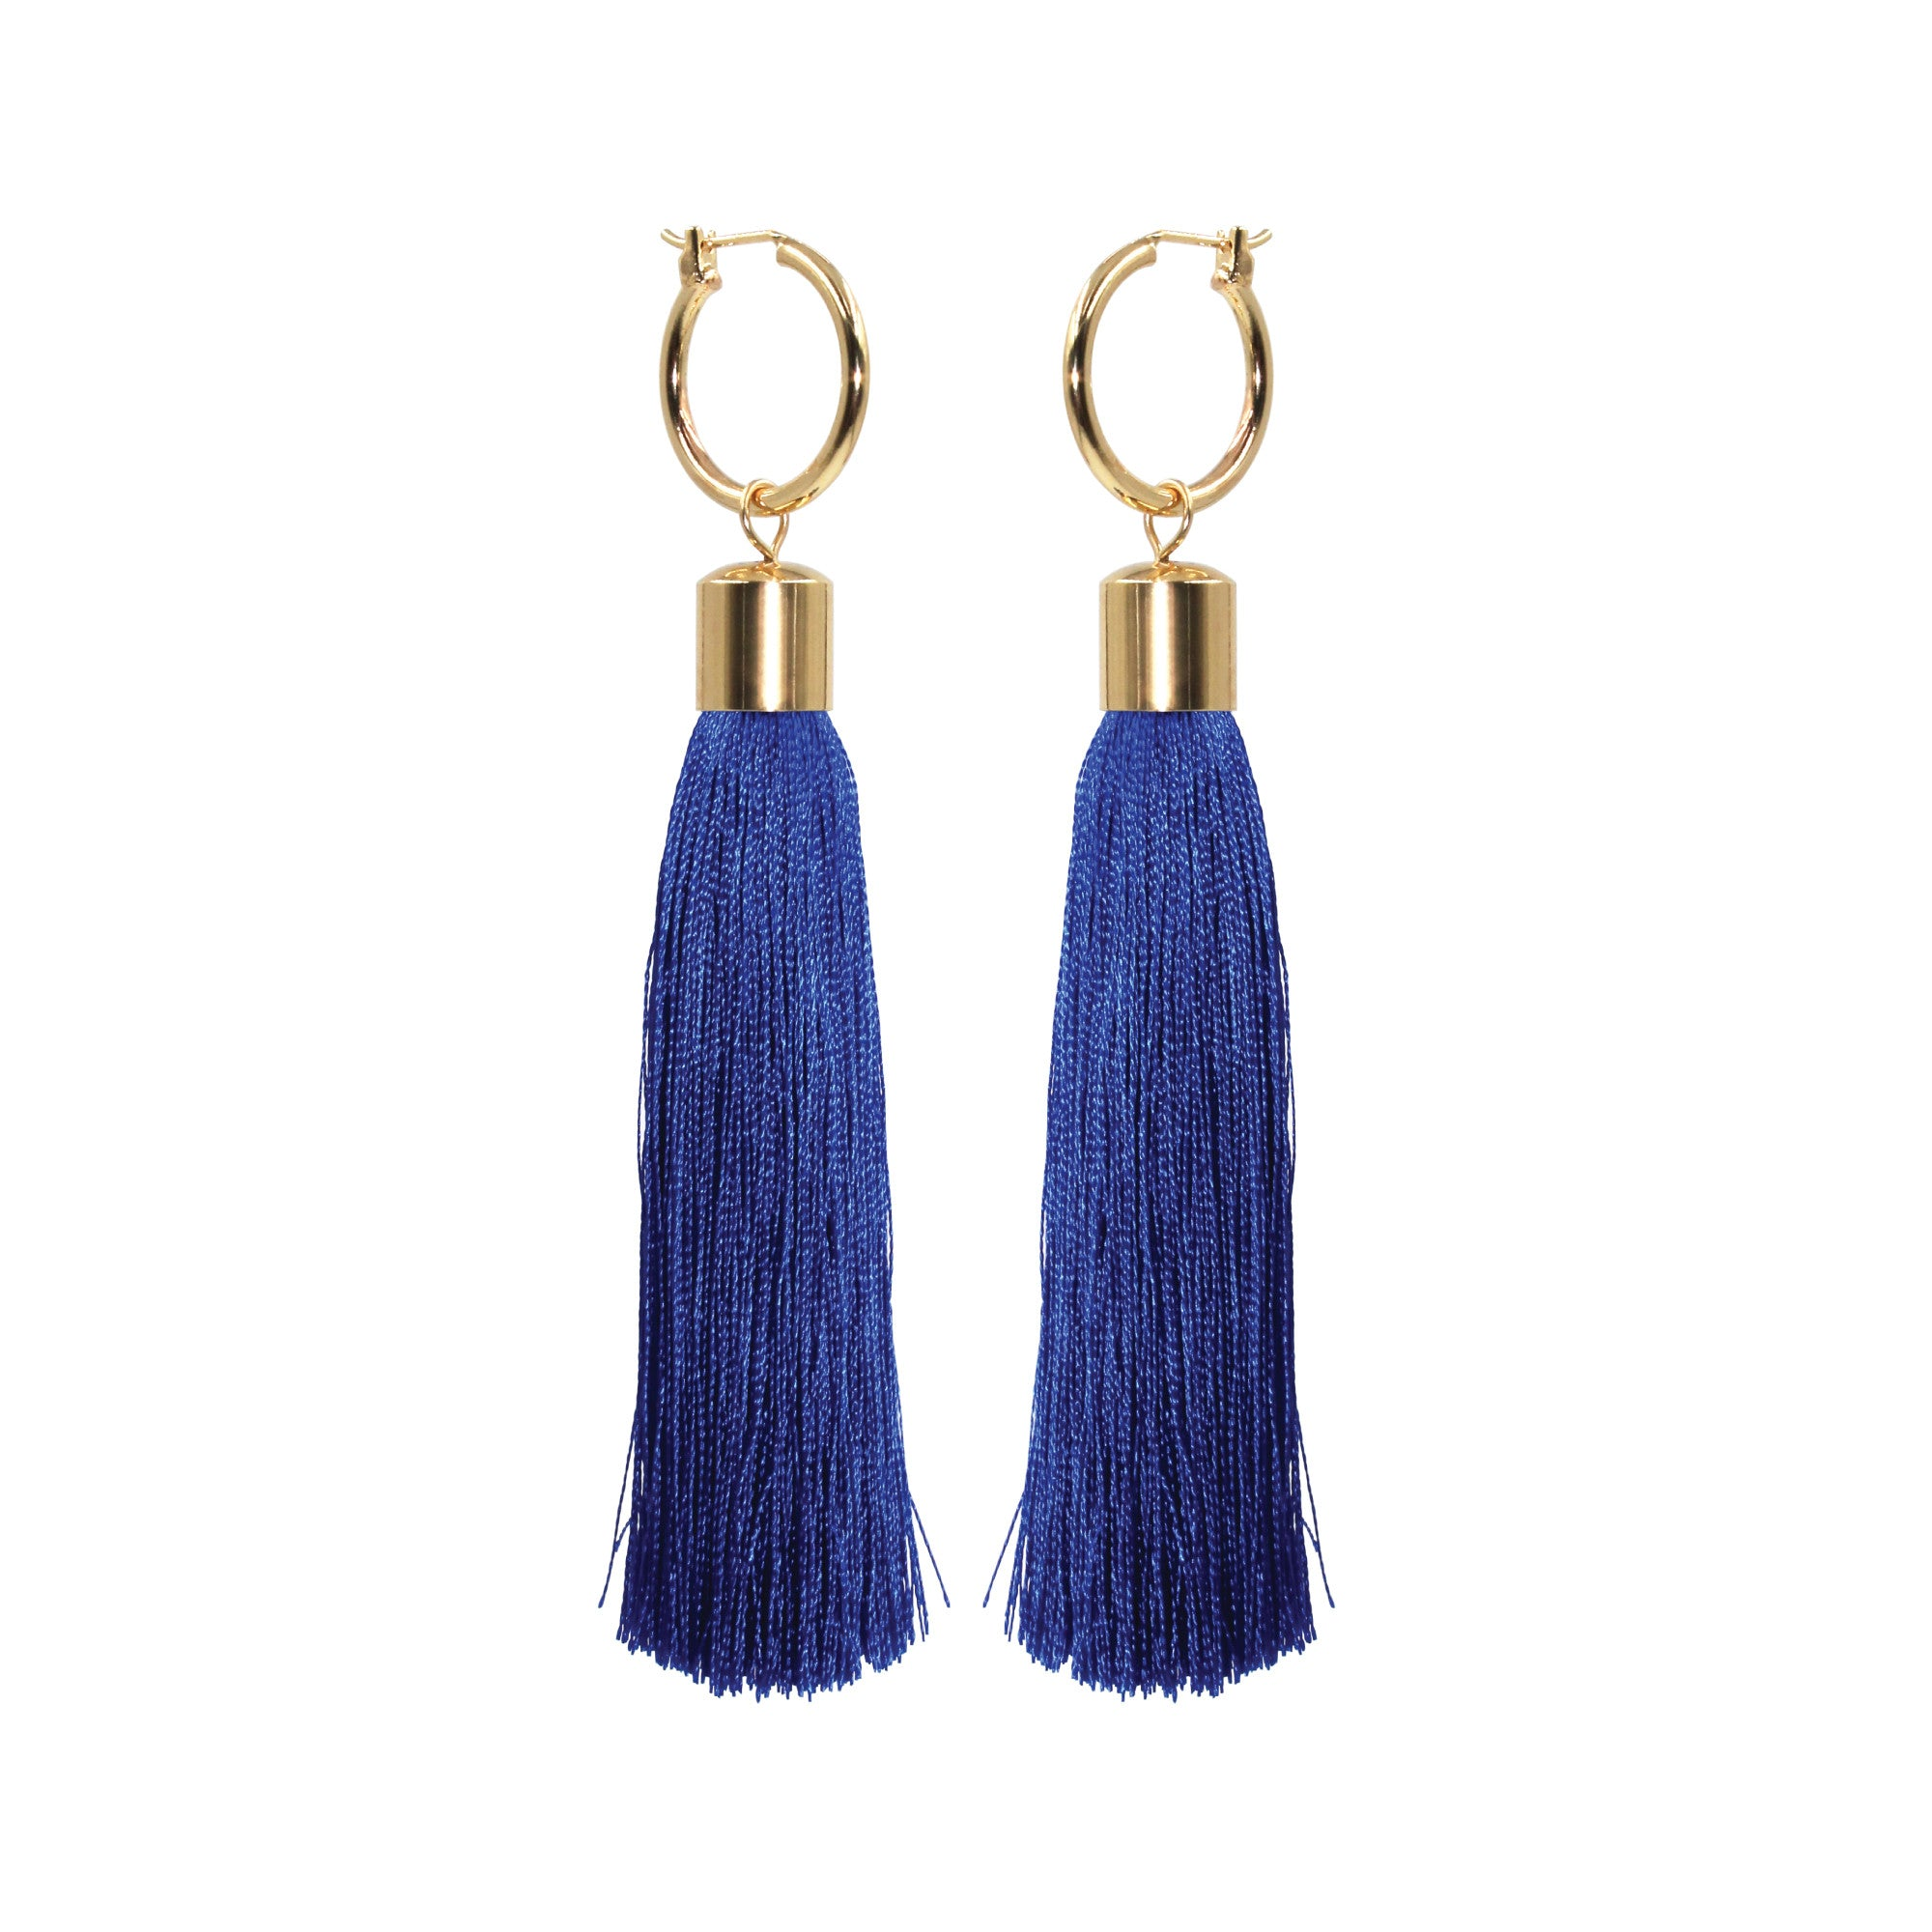 earrings fringe bead seed tassel long chandelier statement deuu fullxfull jewelry il listing